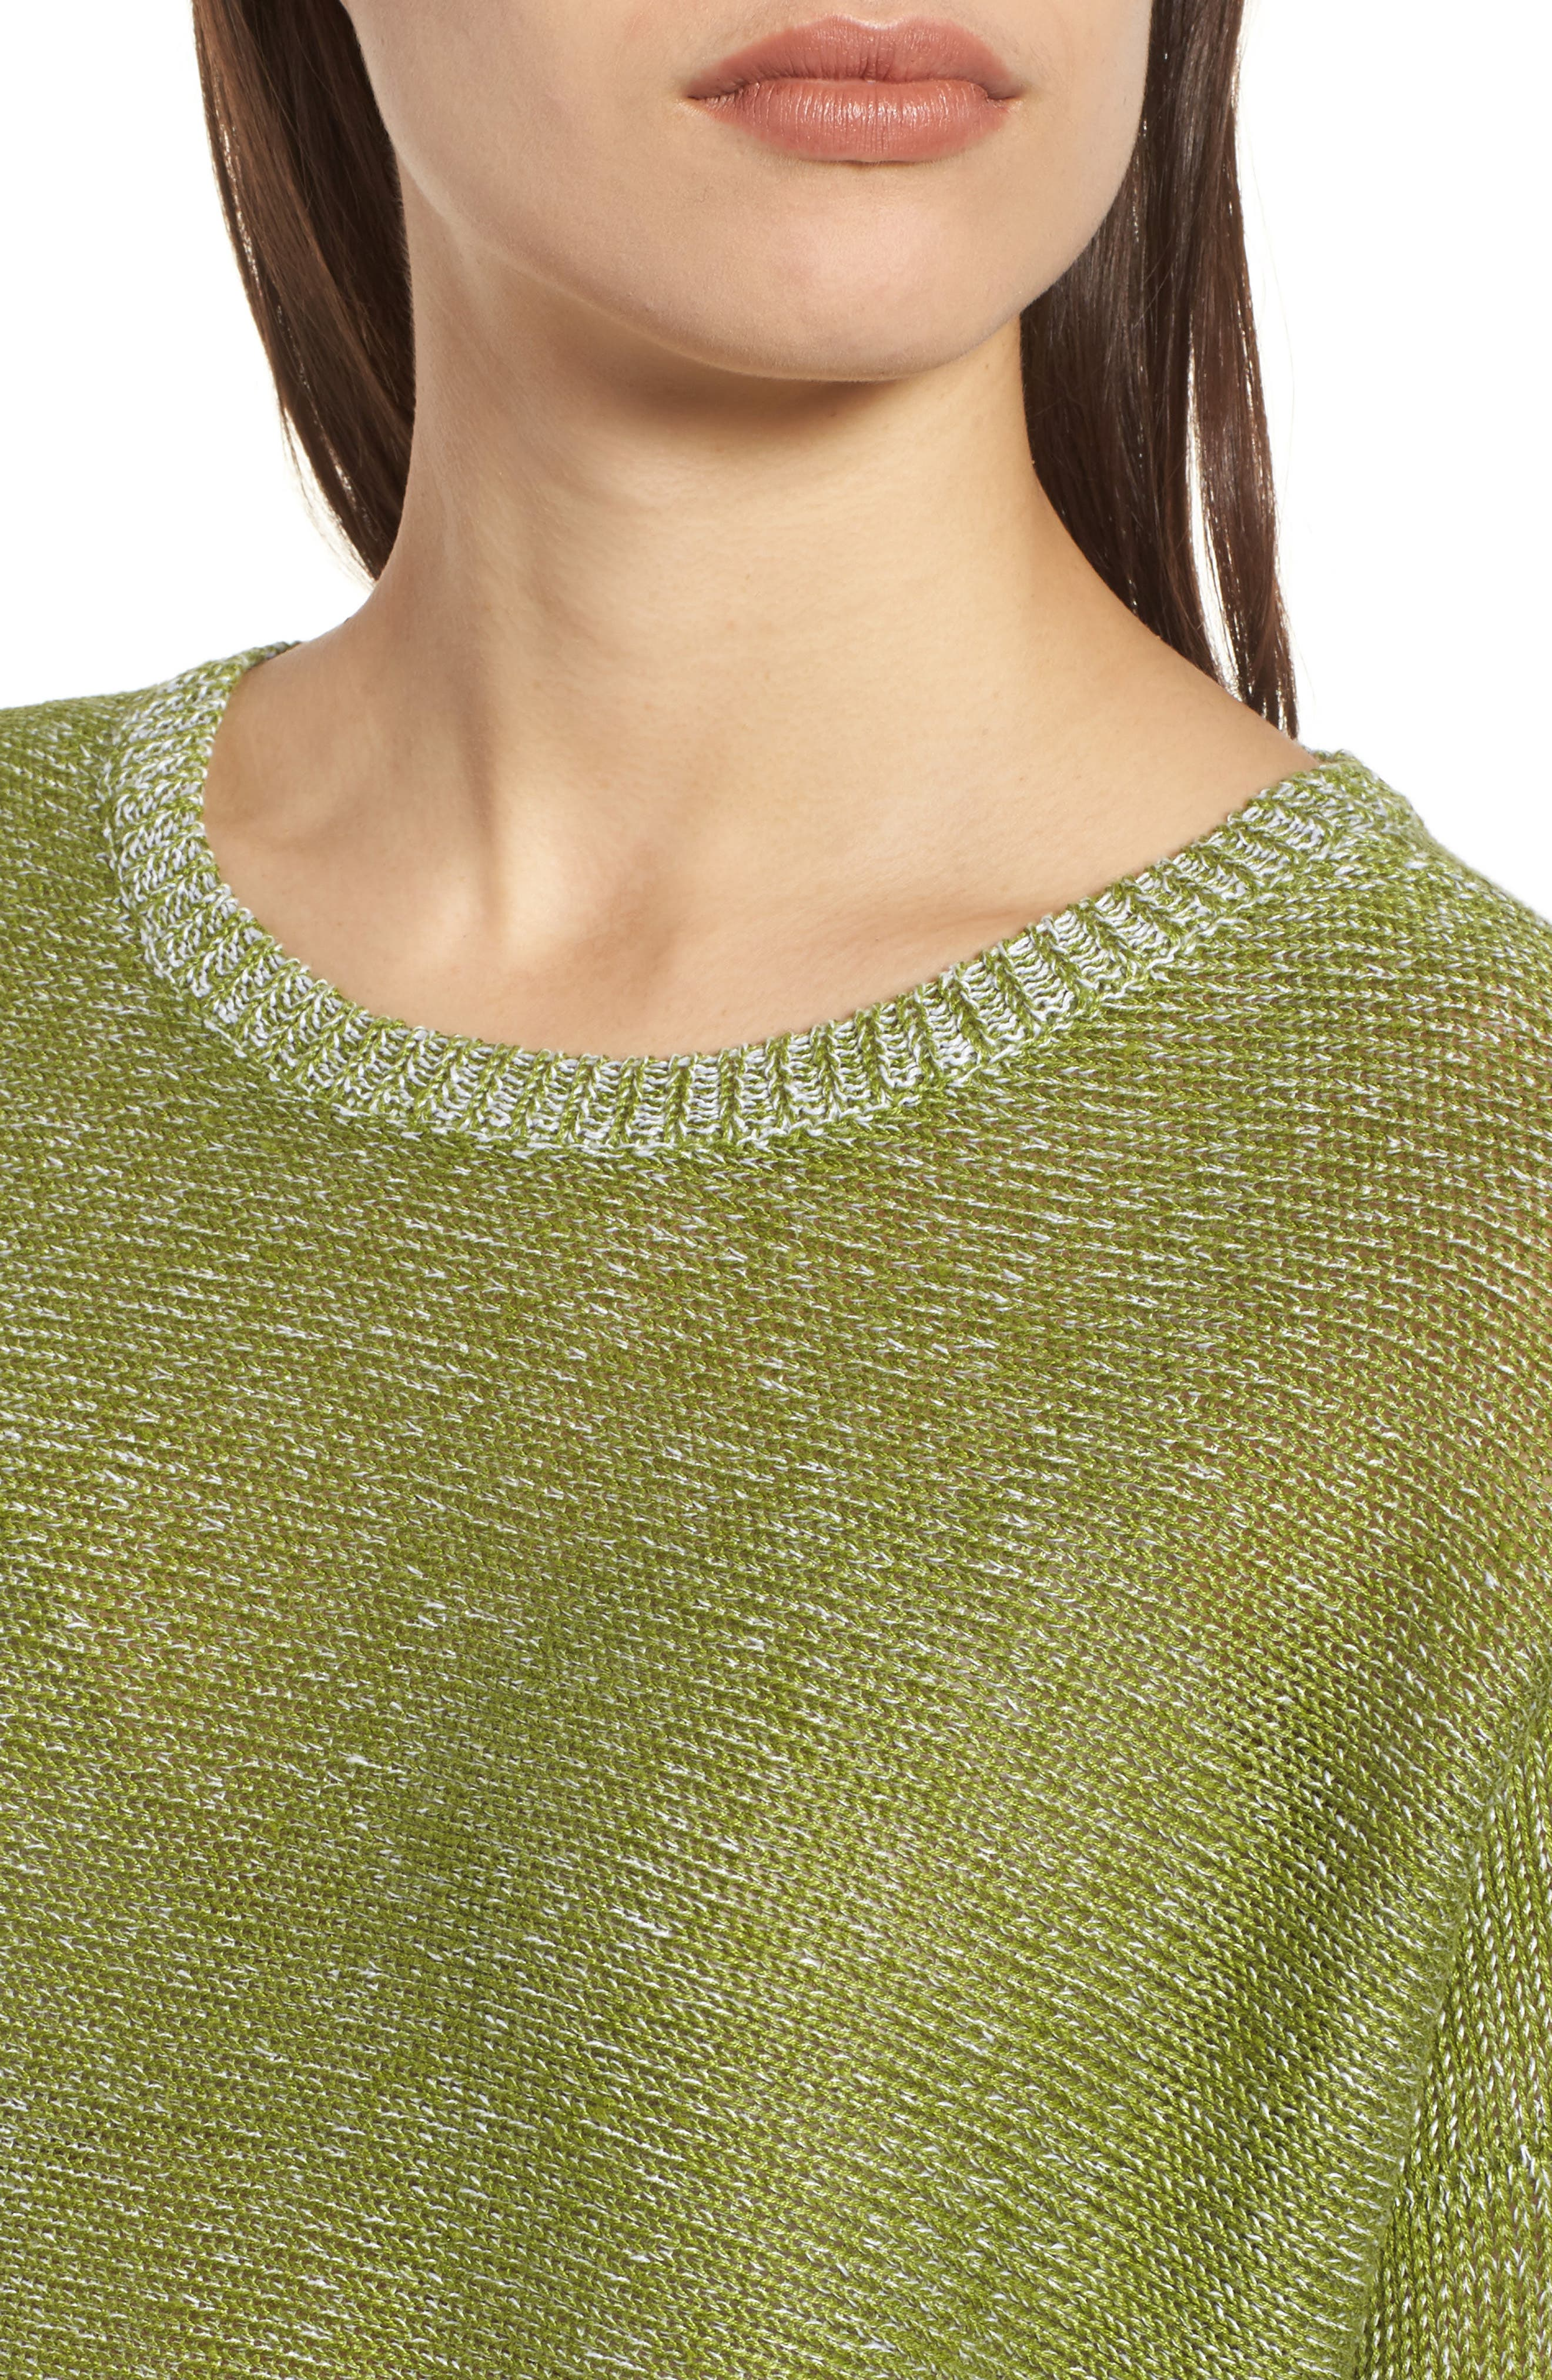 Boxy Organic Linen Sweater,                             Alternate thumbnail 4, color,                             308